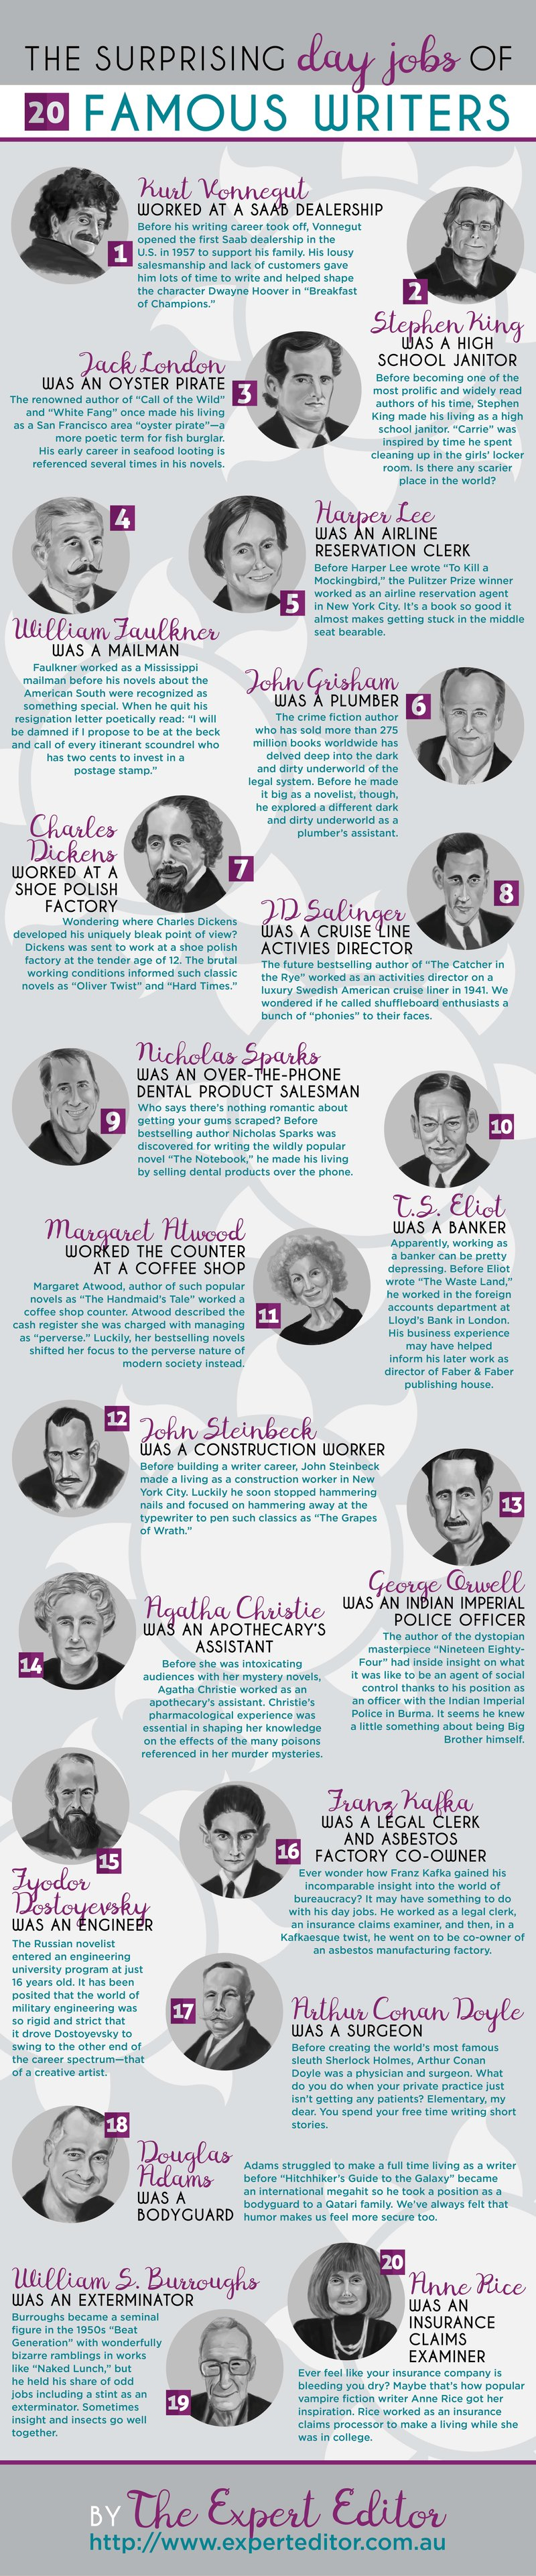 surprising day jobs of famous writers lance writing jobs a famous writers day jobs